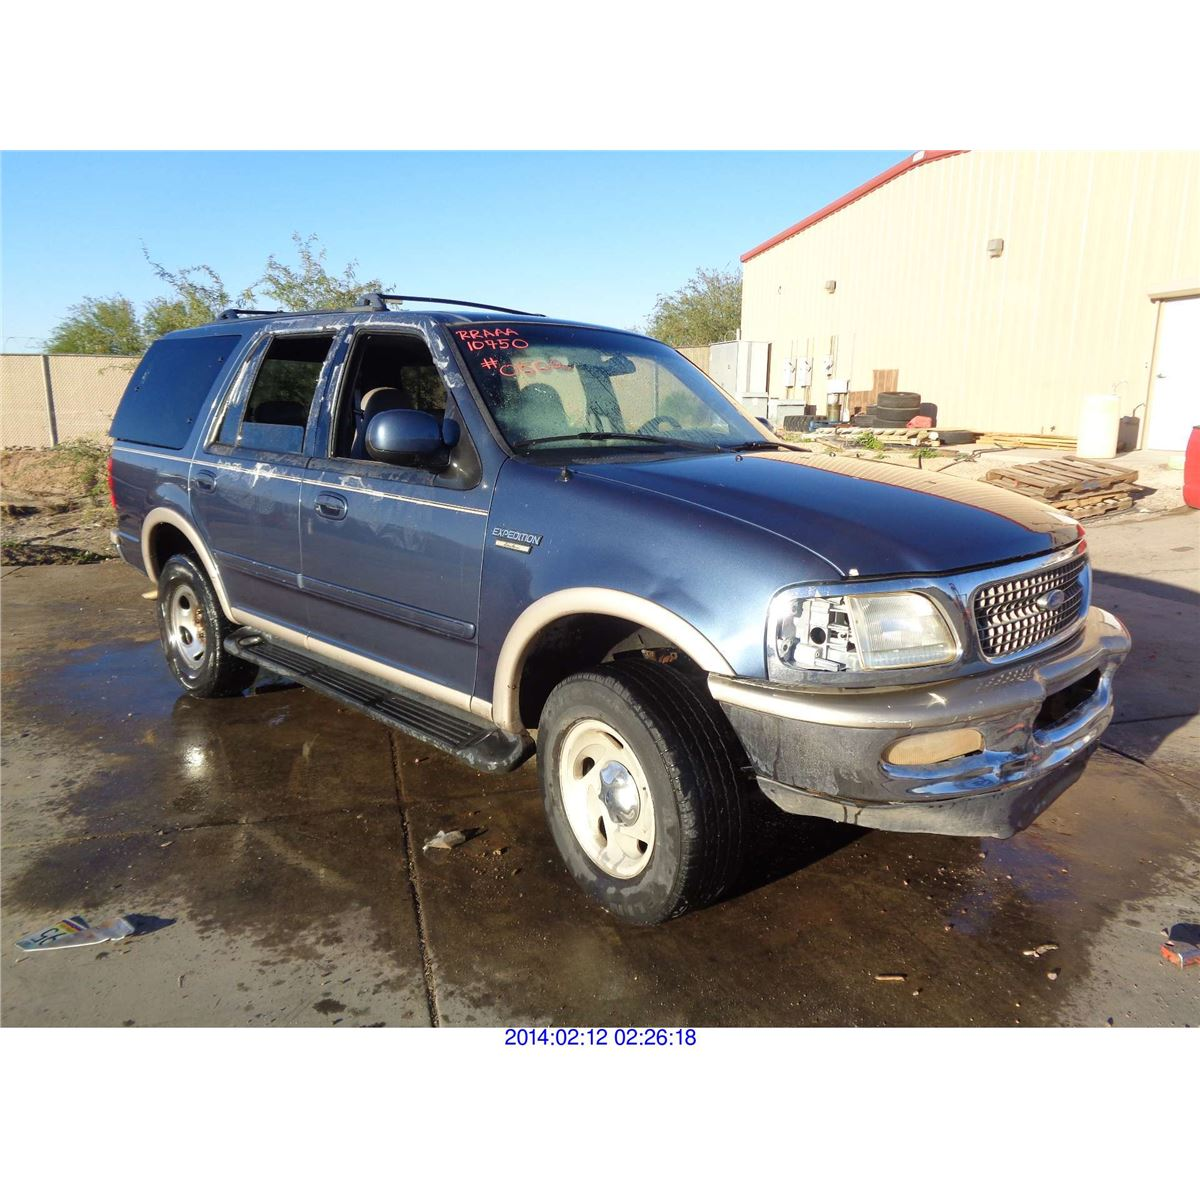 1997 Ford Expedition For Sale: FORD EXPEDITION // SALVAGE